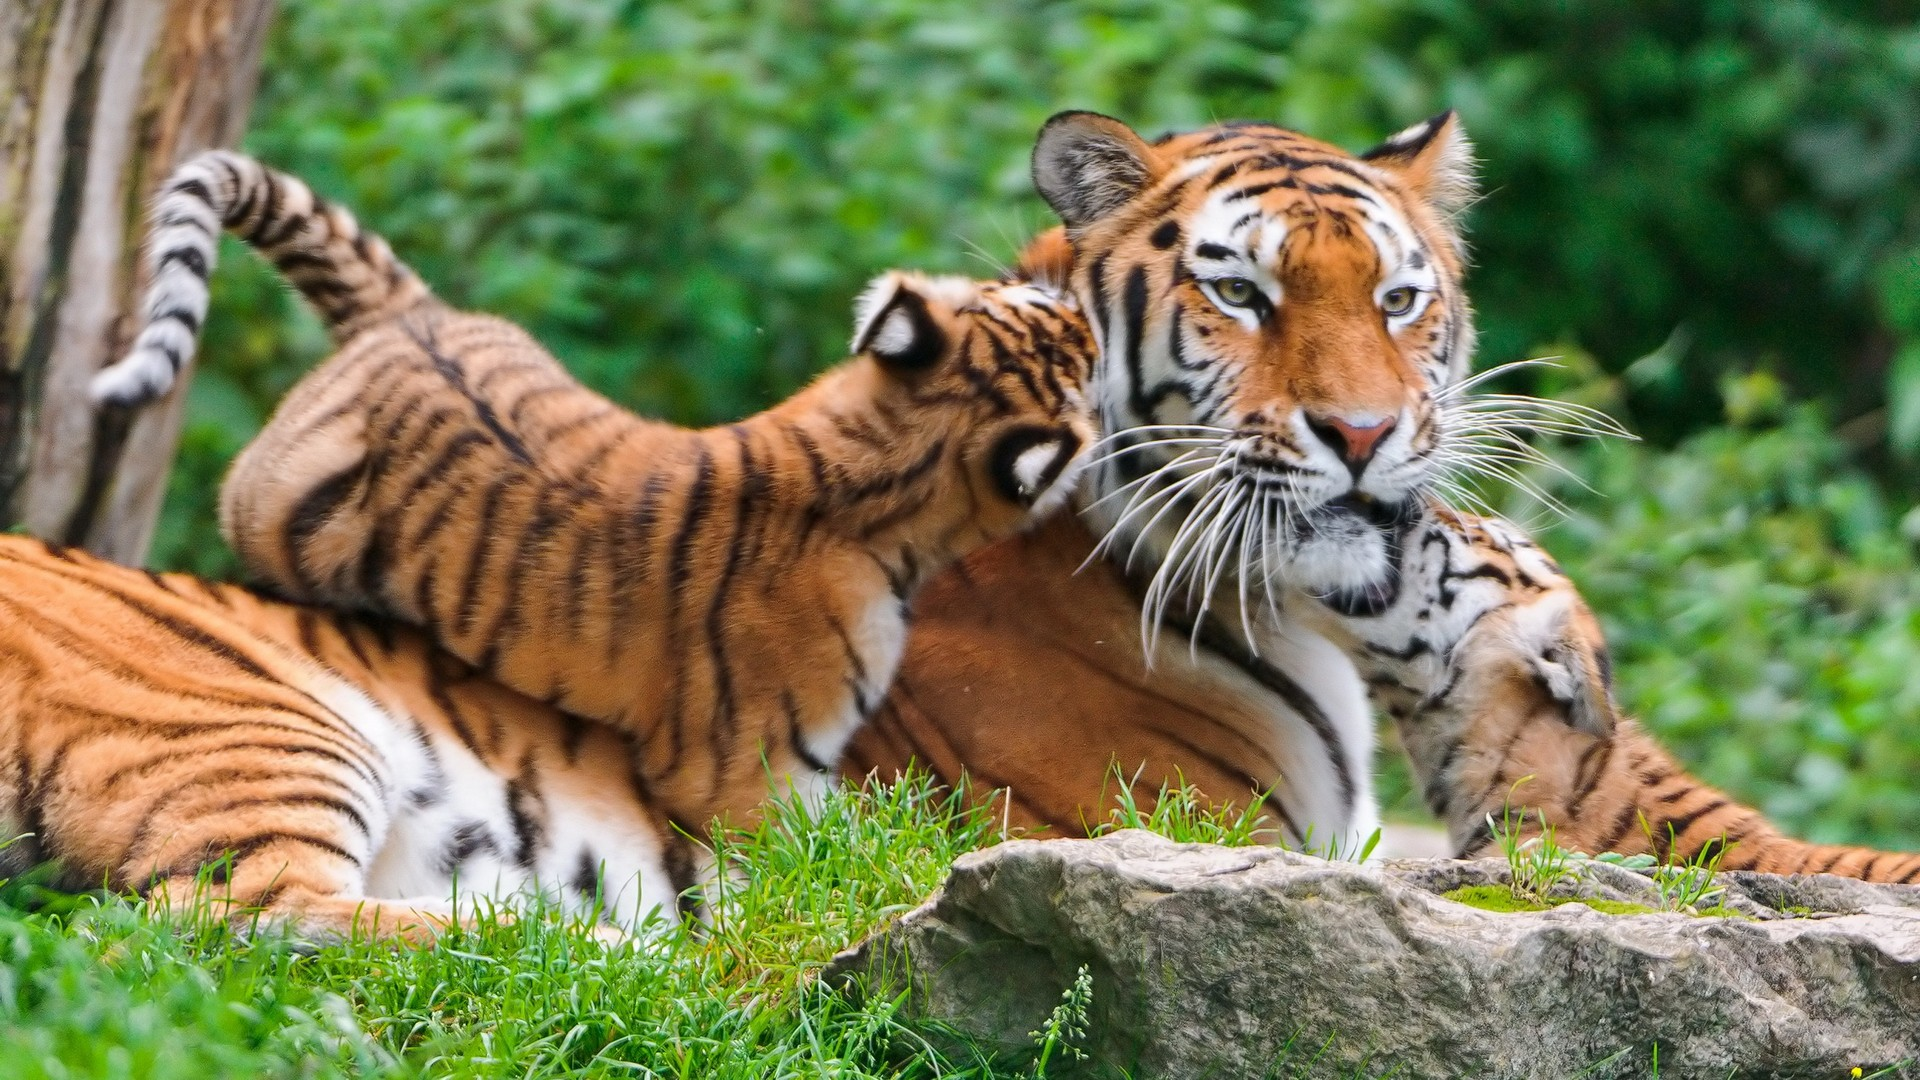 Nature With Animals Wallpapers Page 1